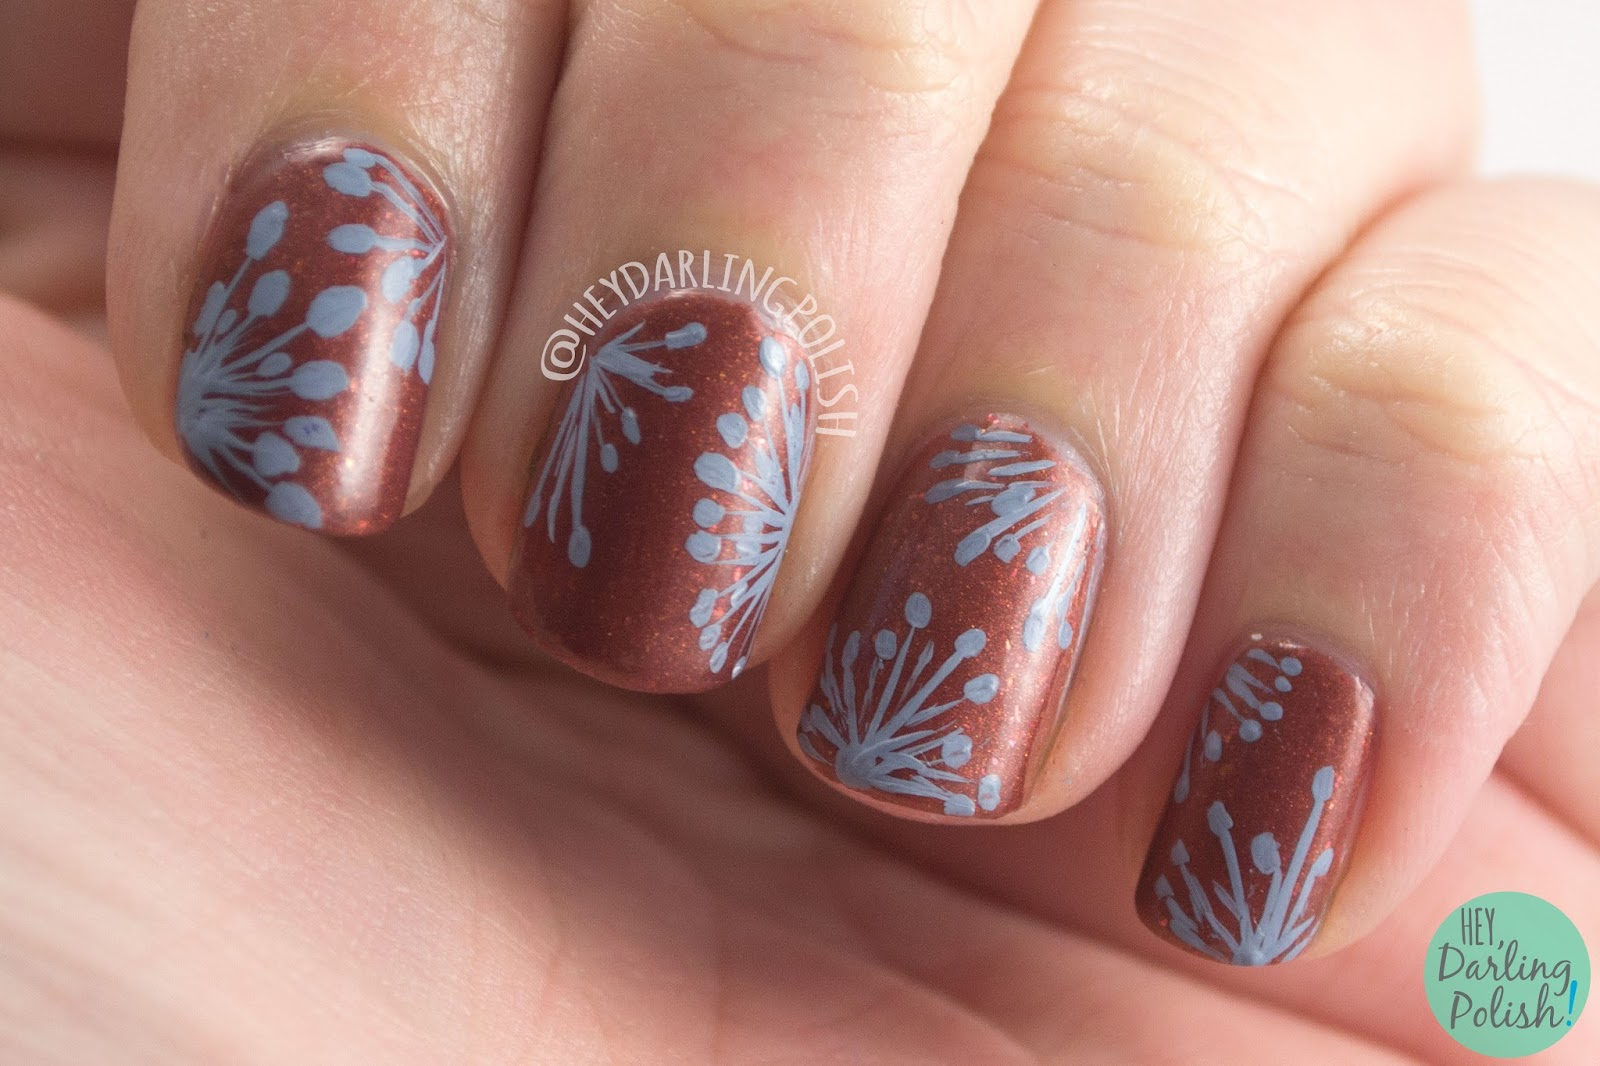 nails, nail art, nail polish, wallpaper, hey darling polish, copper, brown, floral, pattern